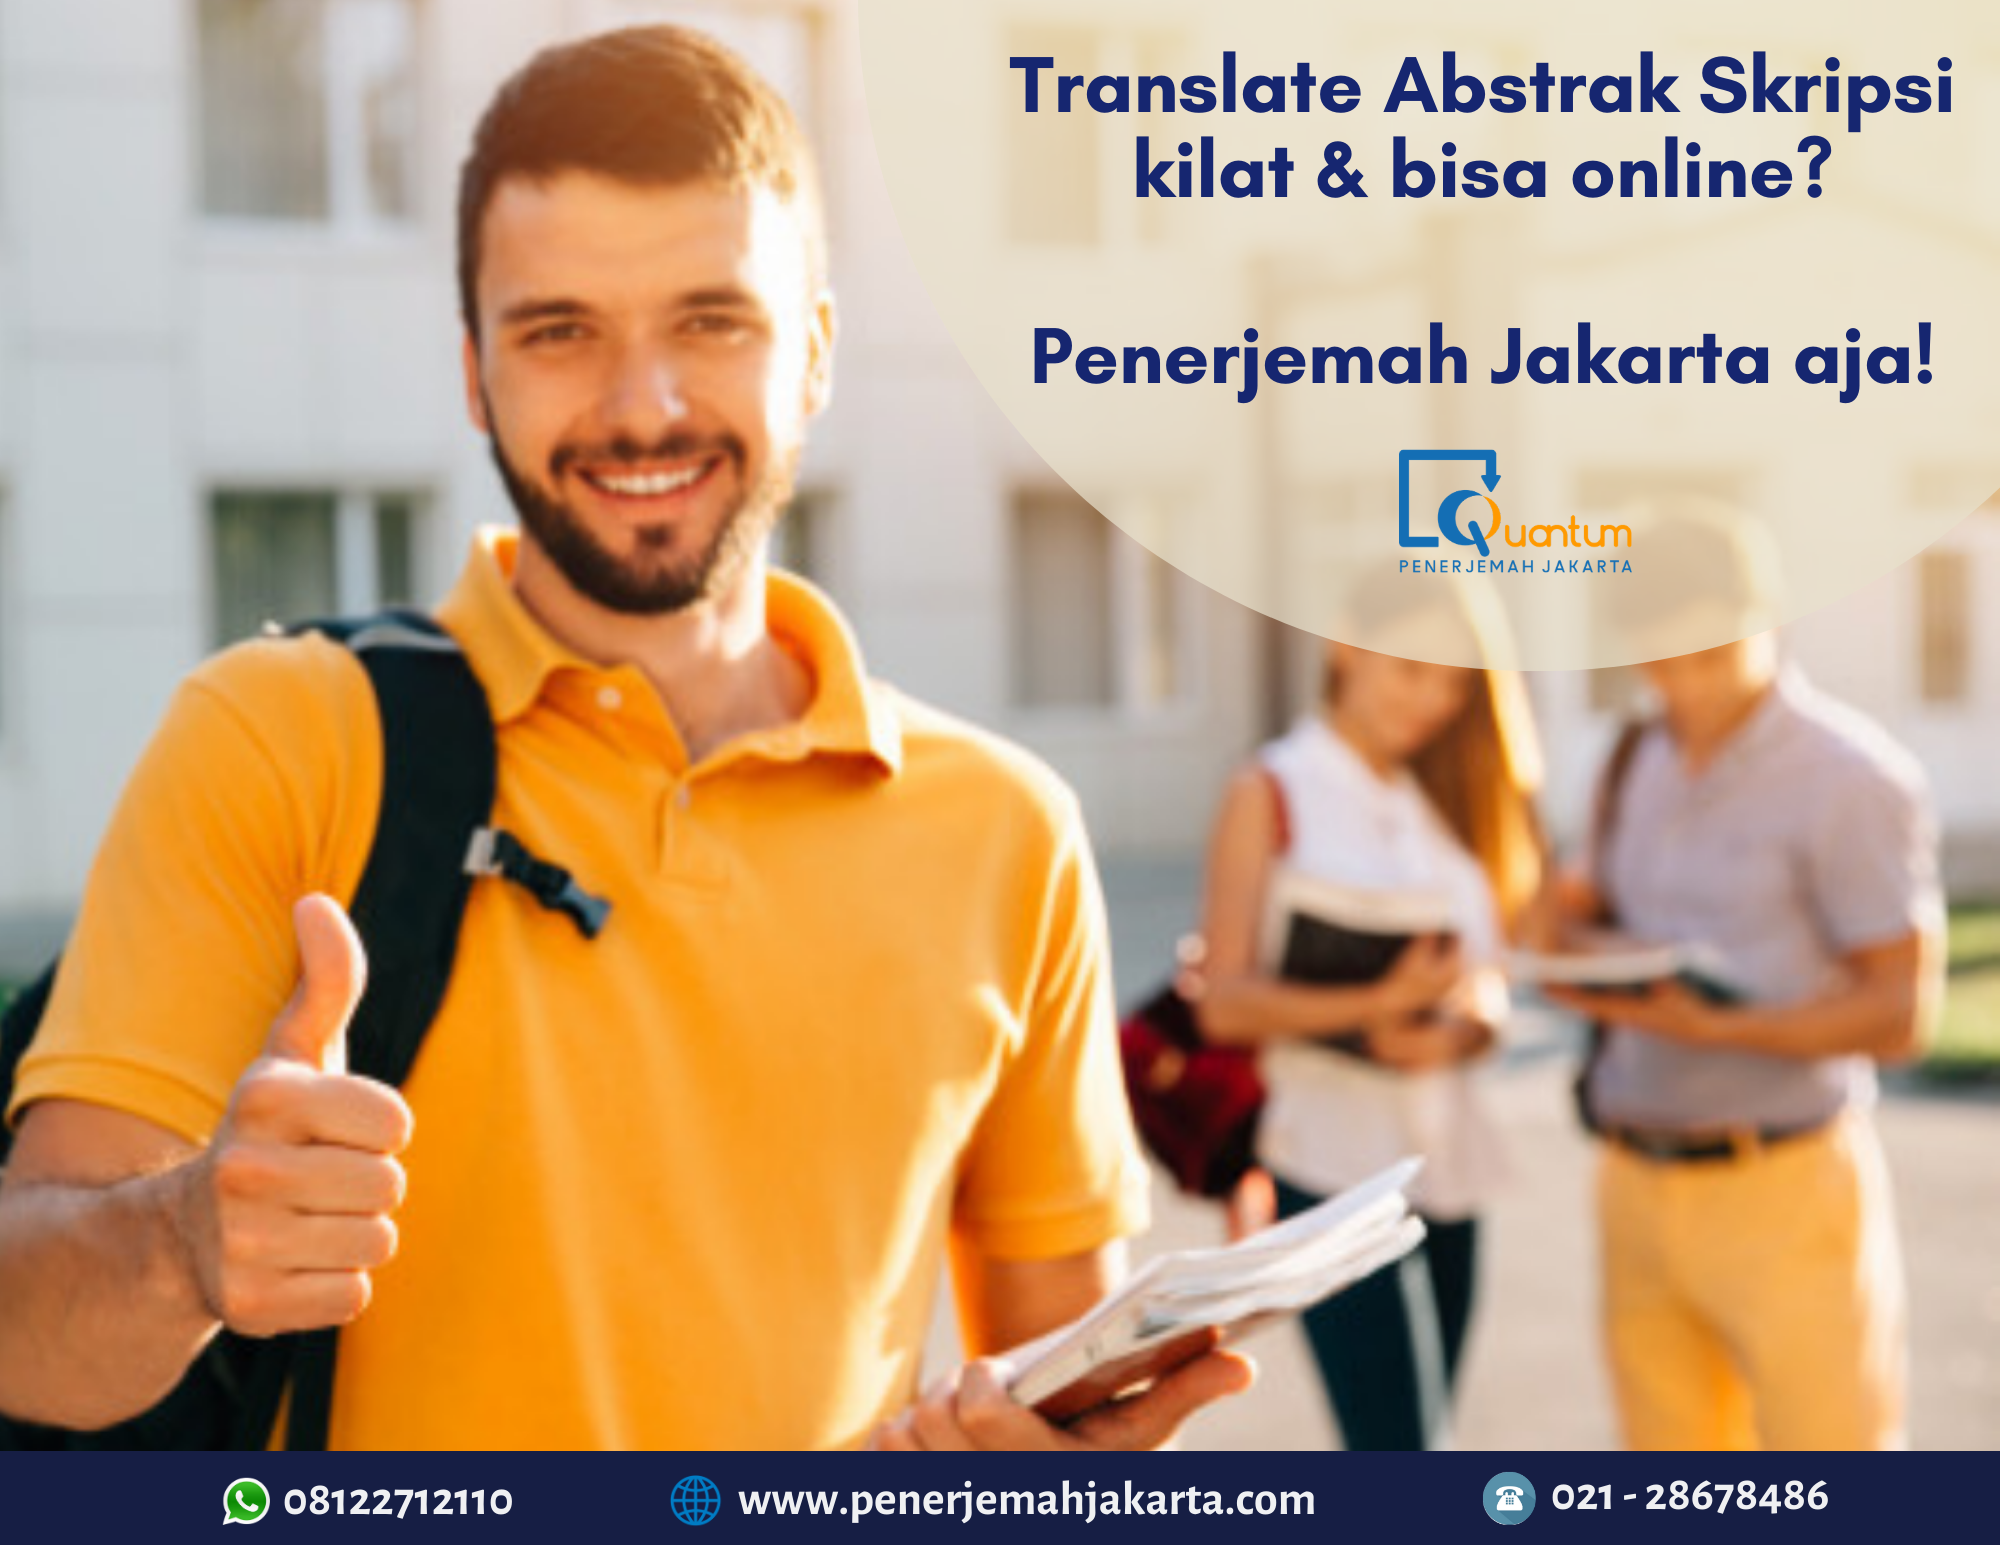 Translate Abstrak Skripsi Kilat Online